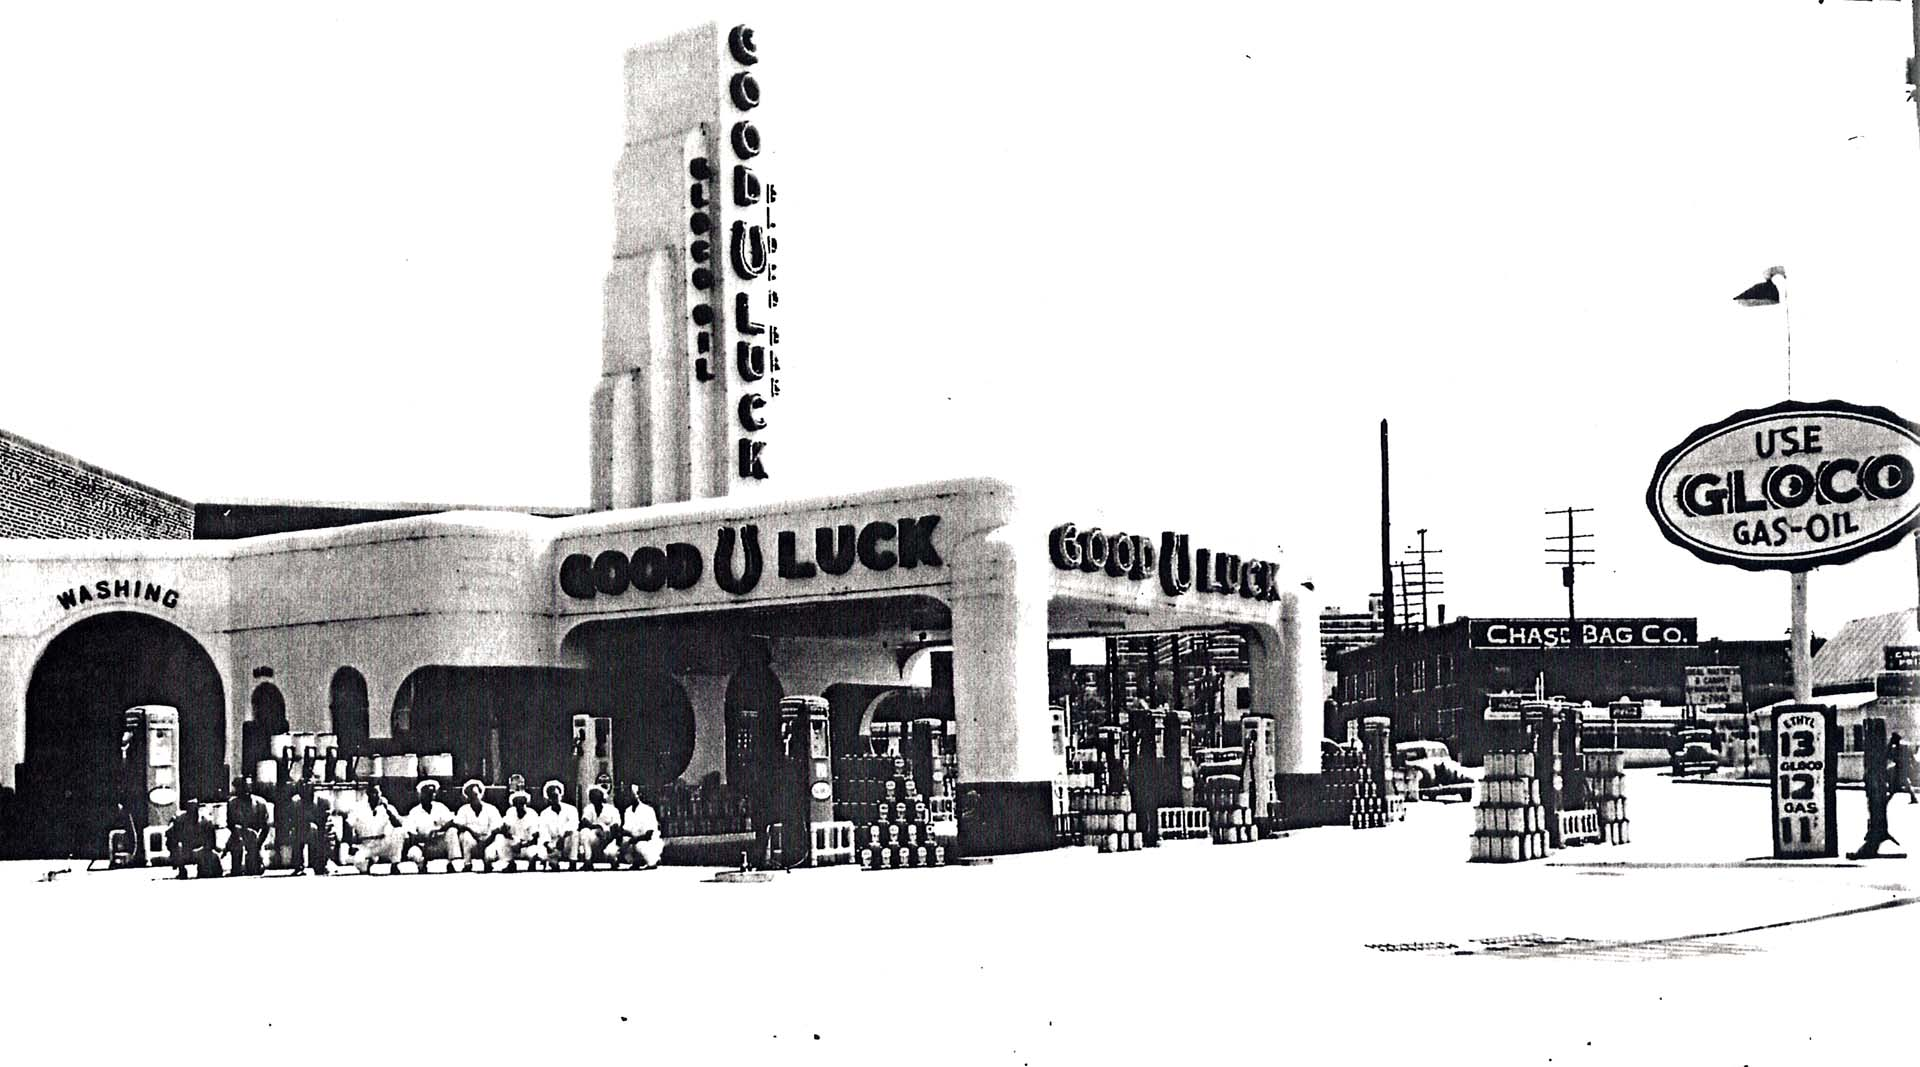 /Home_0_Good_Luck_Oil_Company_Service_GLOCO_Petroleum_Petroliana_Ethyl_Gasoline_Fuel_Signs_Collectables_Store_Museum_History_Dallas_Fort_Worth_Texas_Gas_Drepression_Era_Art_Deco_Architecture.jpg